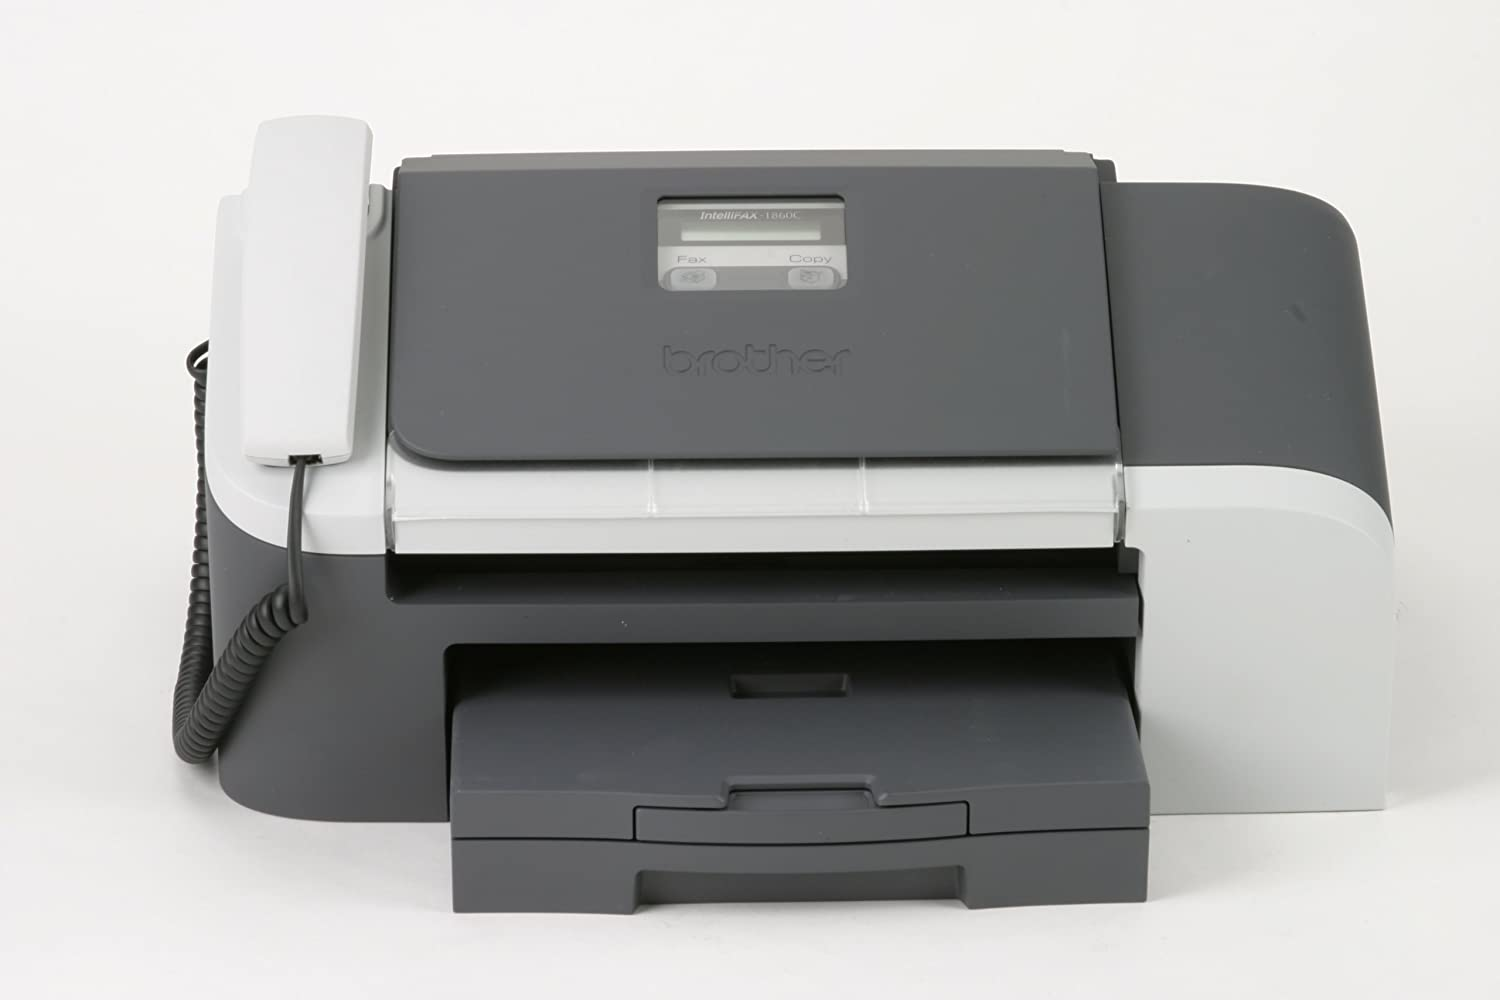 BROTHER FAX 1860C WINDOWS 8.1 DRIVER DOWNLOAD